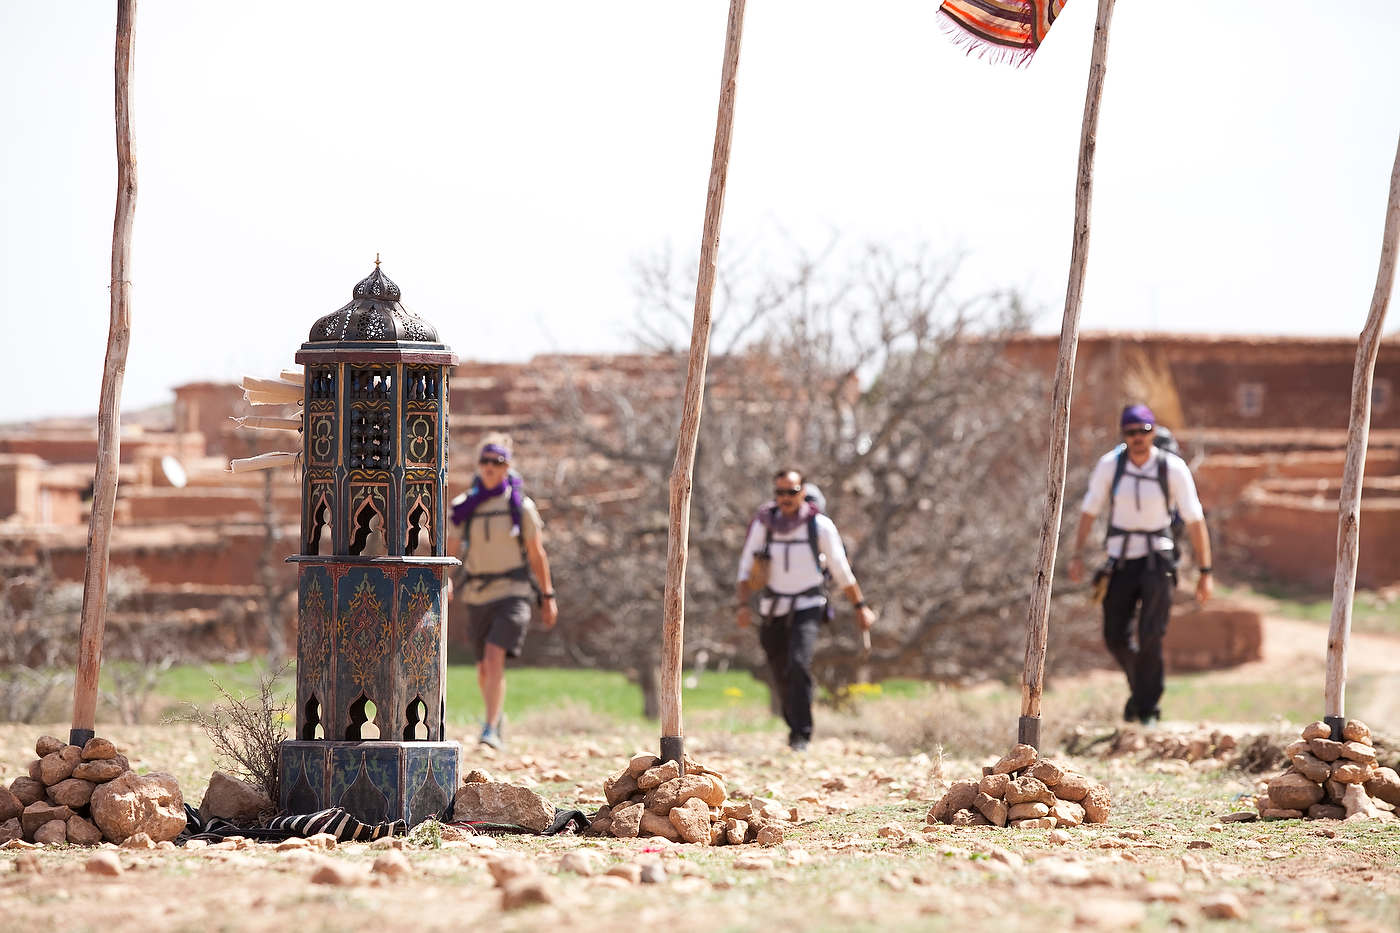 In the lead, Team Gypsies approaches a check point's kiosk.